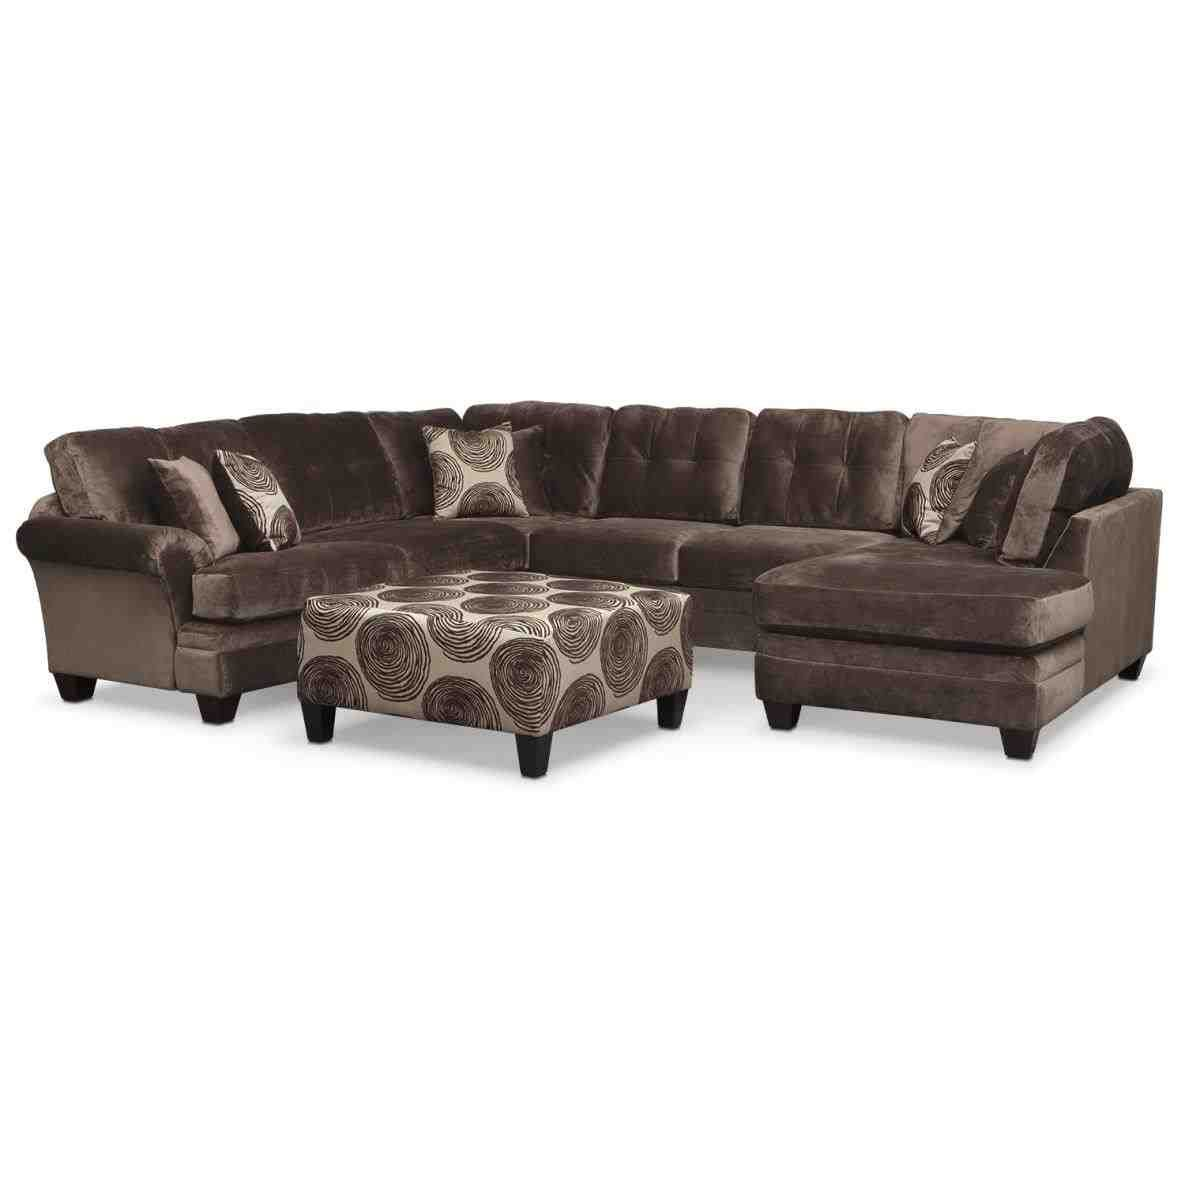 Cheap Living Room Furniture Sets Under 400 Xfmxinfo Page 57